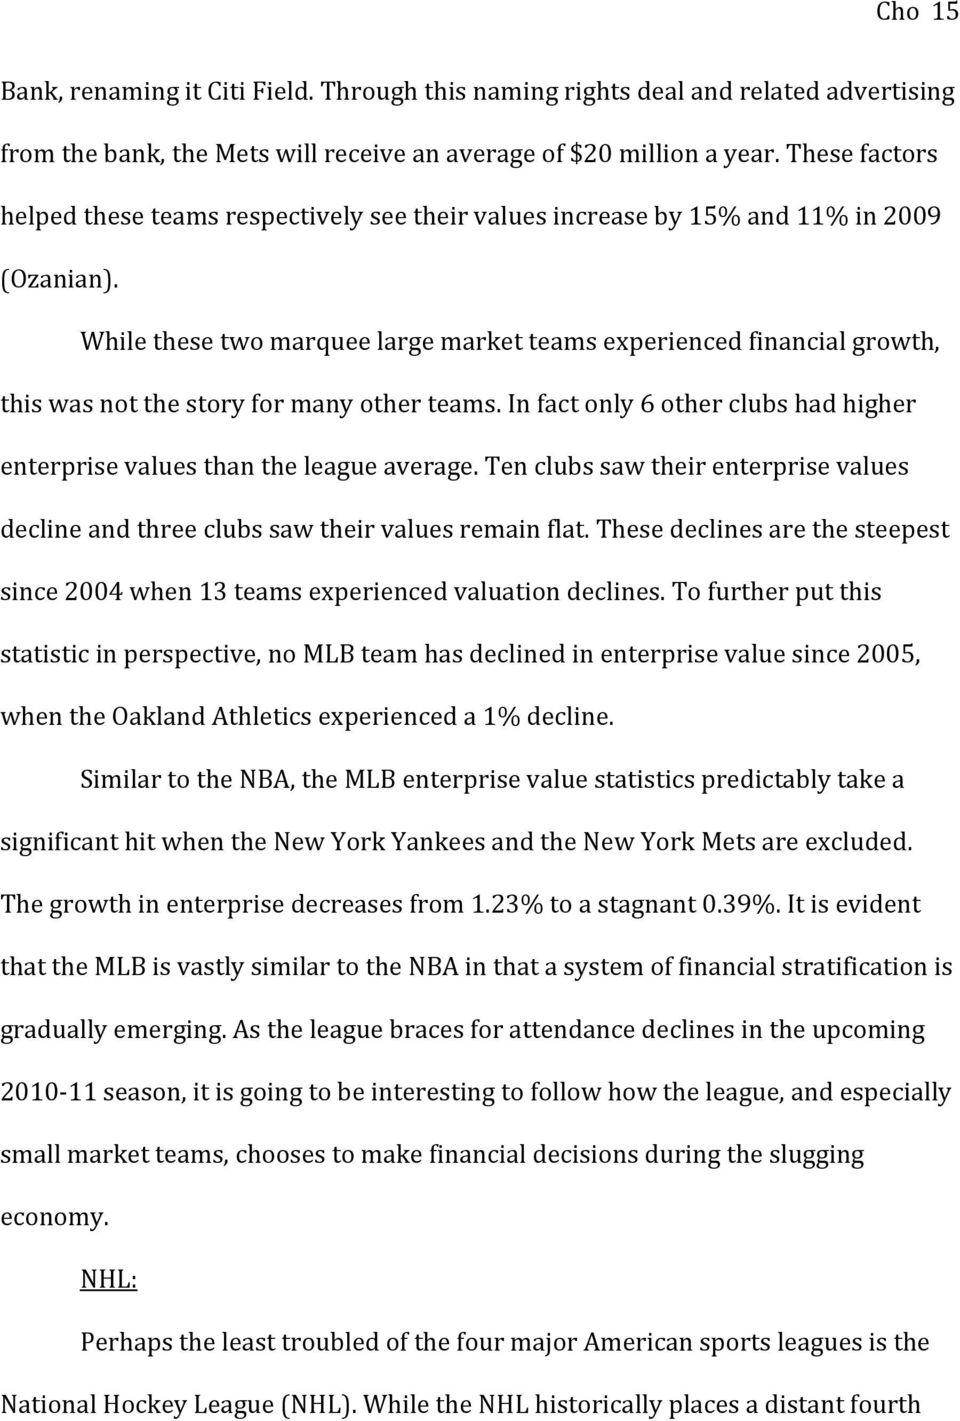 While these two marquee large market teams experienced financial growth, this was not the story for many other teams. In fact only 6 other clubs had higher enterprise values than the league average.